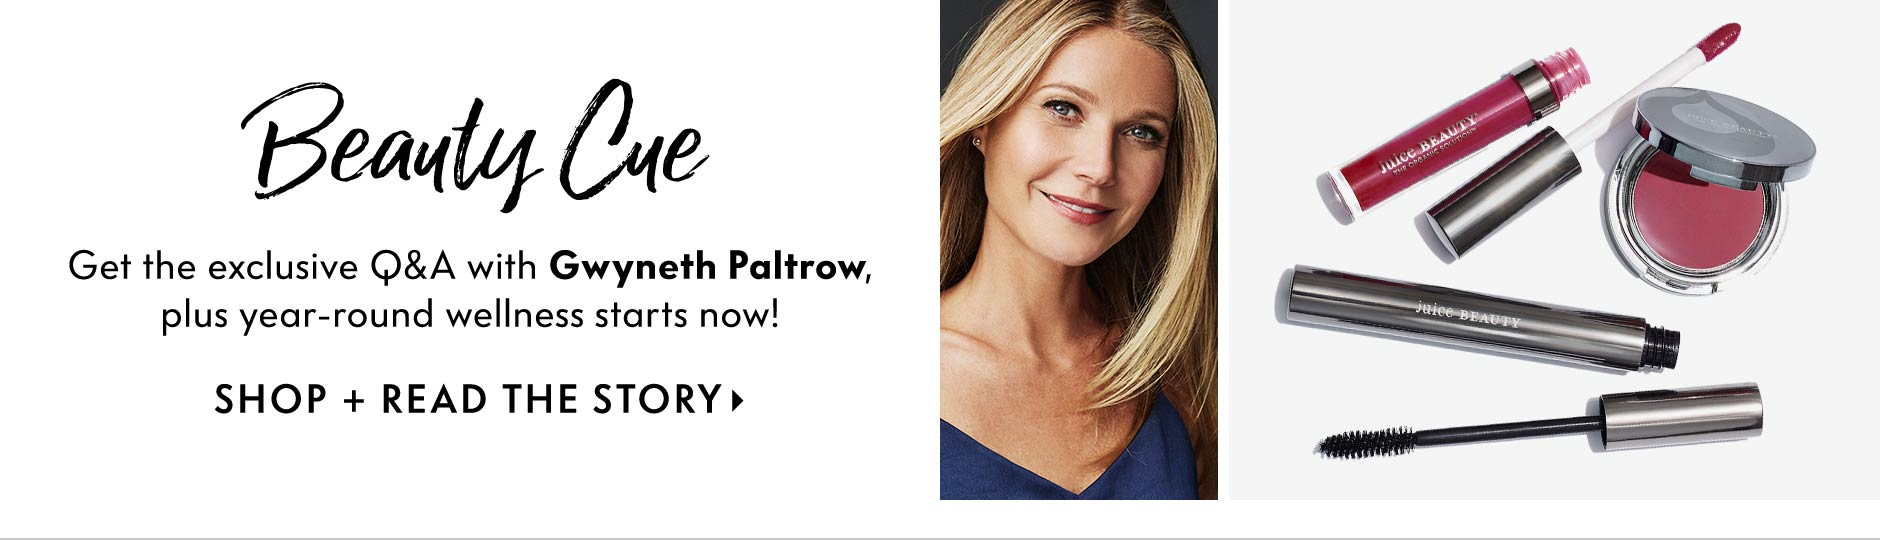 Juice Beauty - highly effective, organic beauty & cosmetics that feed your skin, get Gwyneth Paltrow's scoop on her role as creative director, makeup.